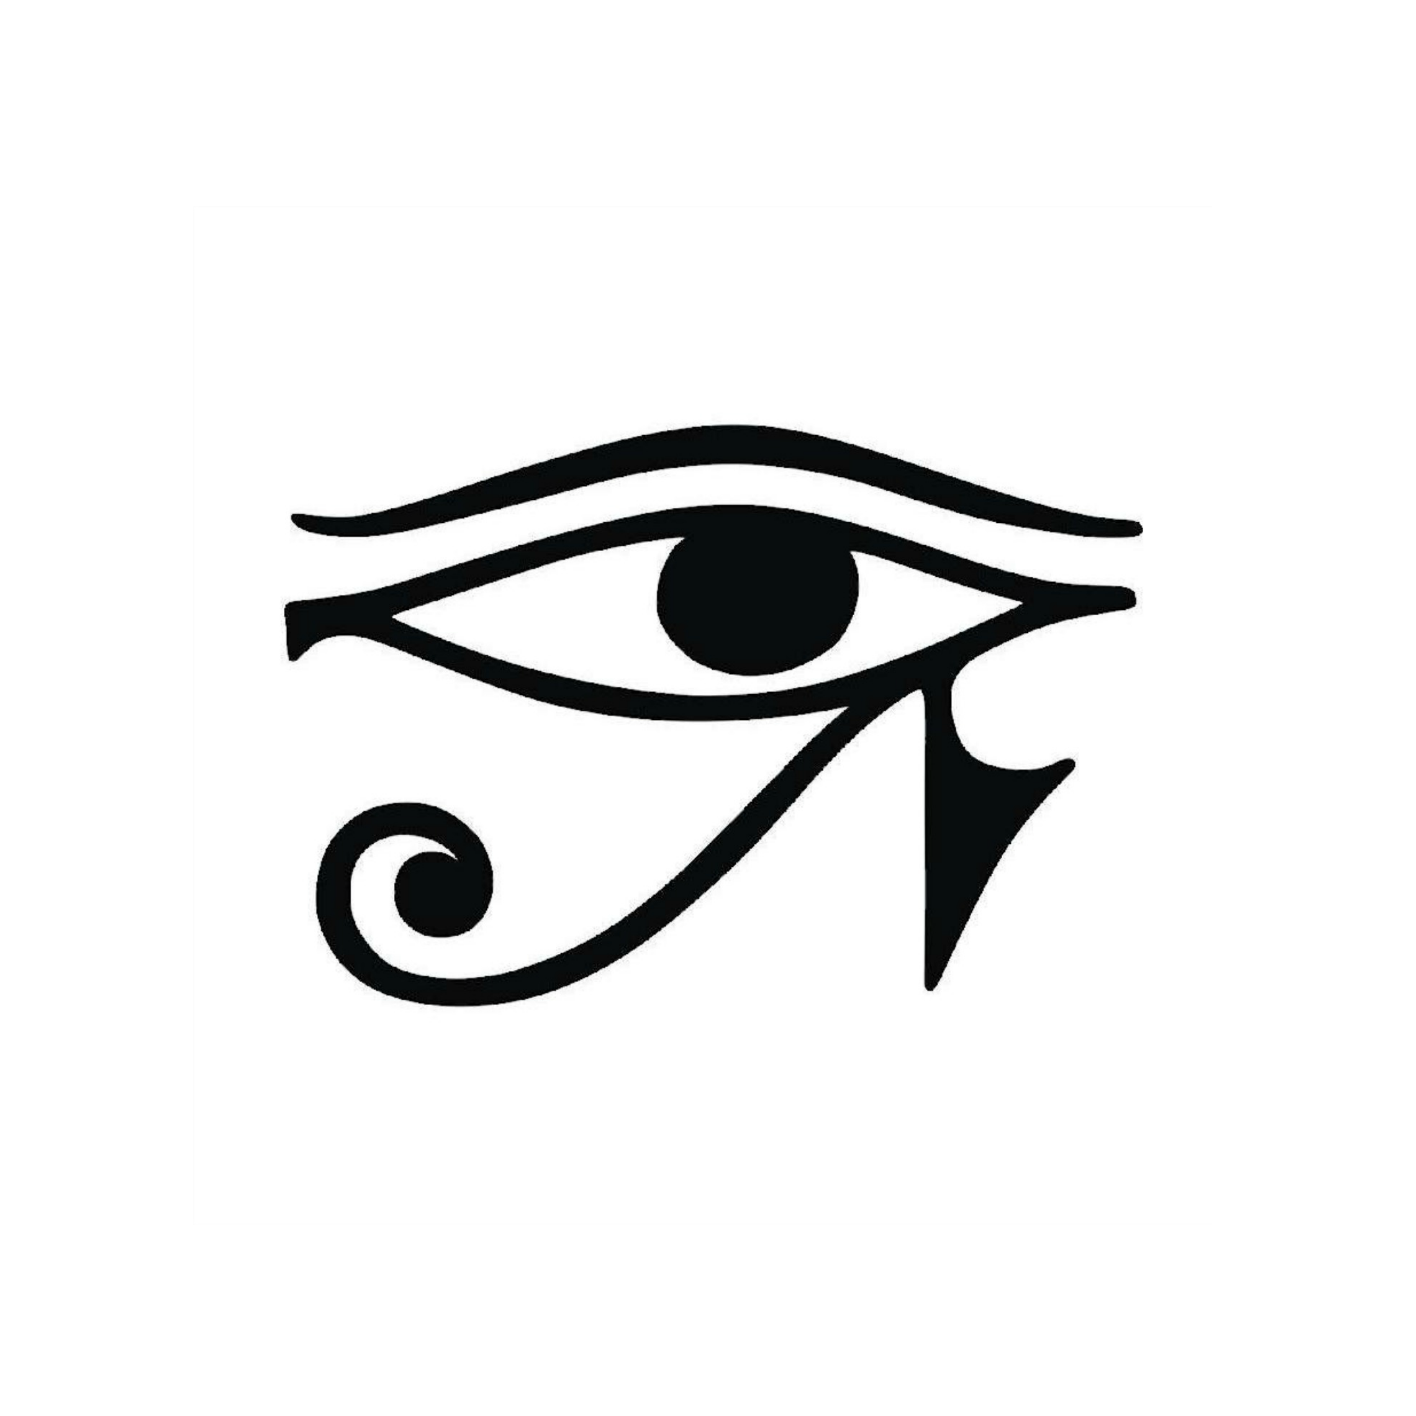 Eye of horus png. Rha grace angeline